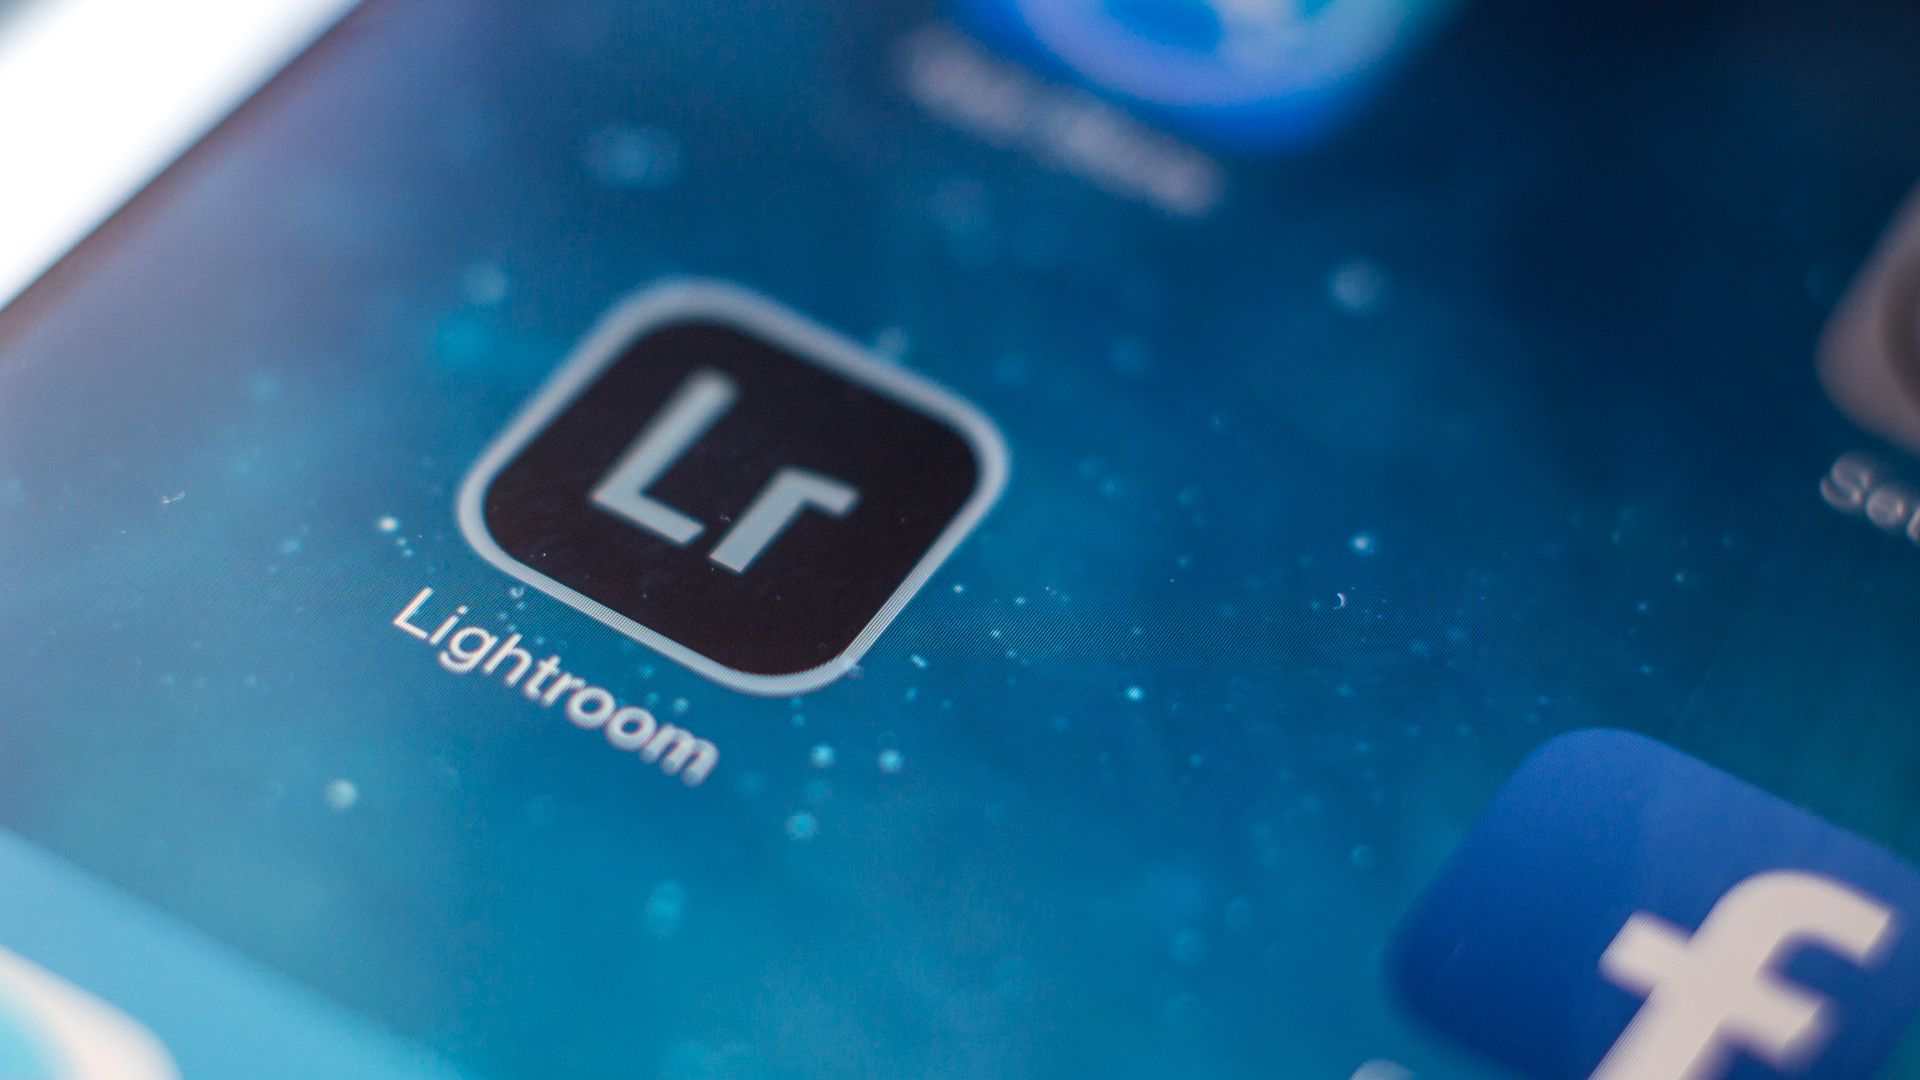 10 Best Adobe Lightroom Courses & Tutorials - Learn Adobe Lightroom Online